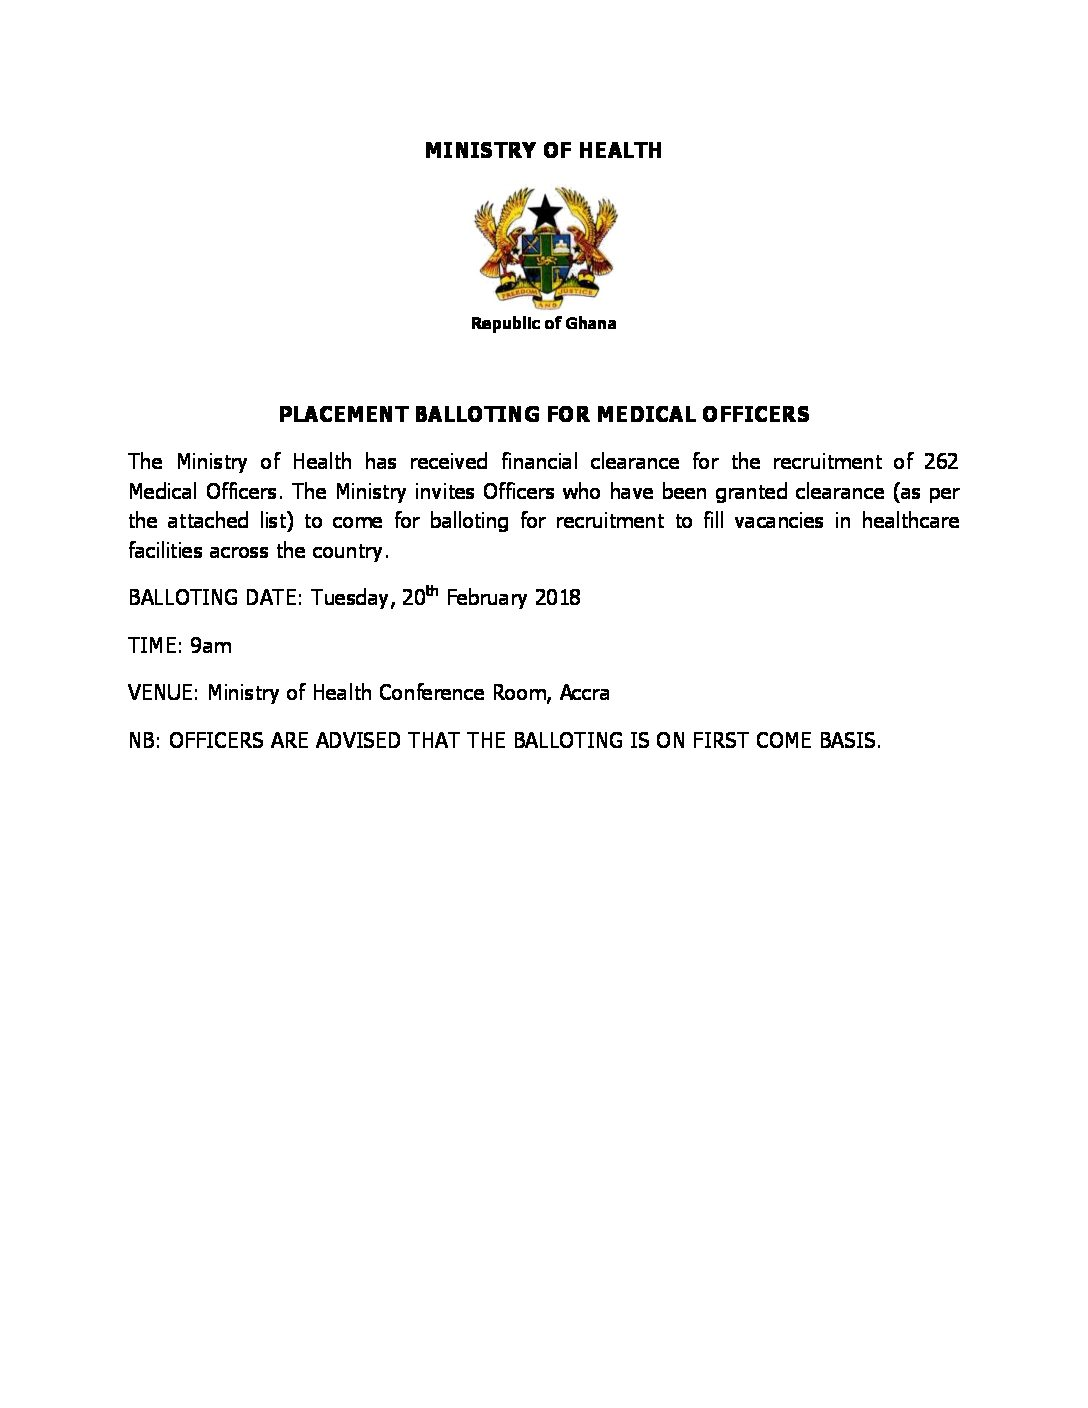 PLACEMENT BALLOTING FOR MEDICAL OFFICERS